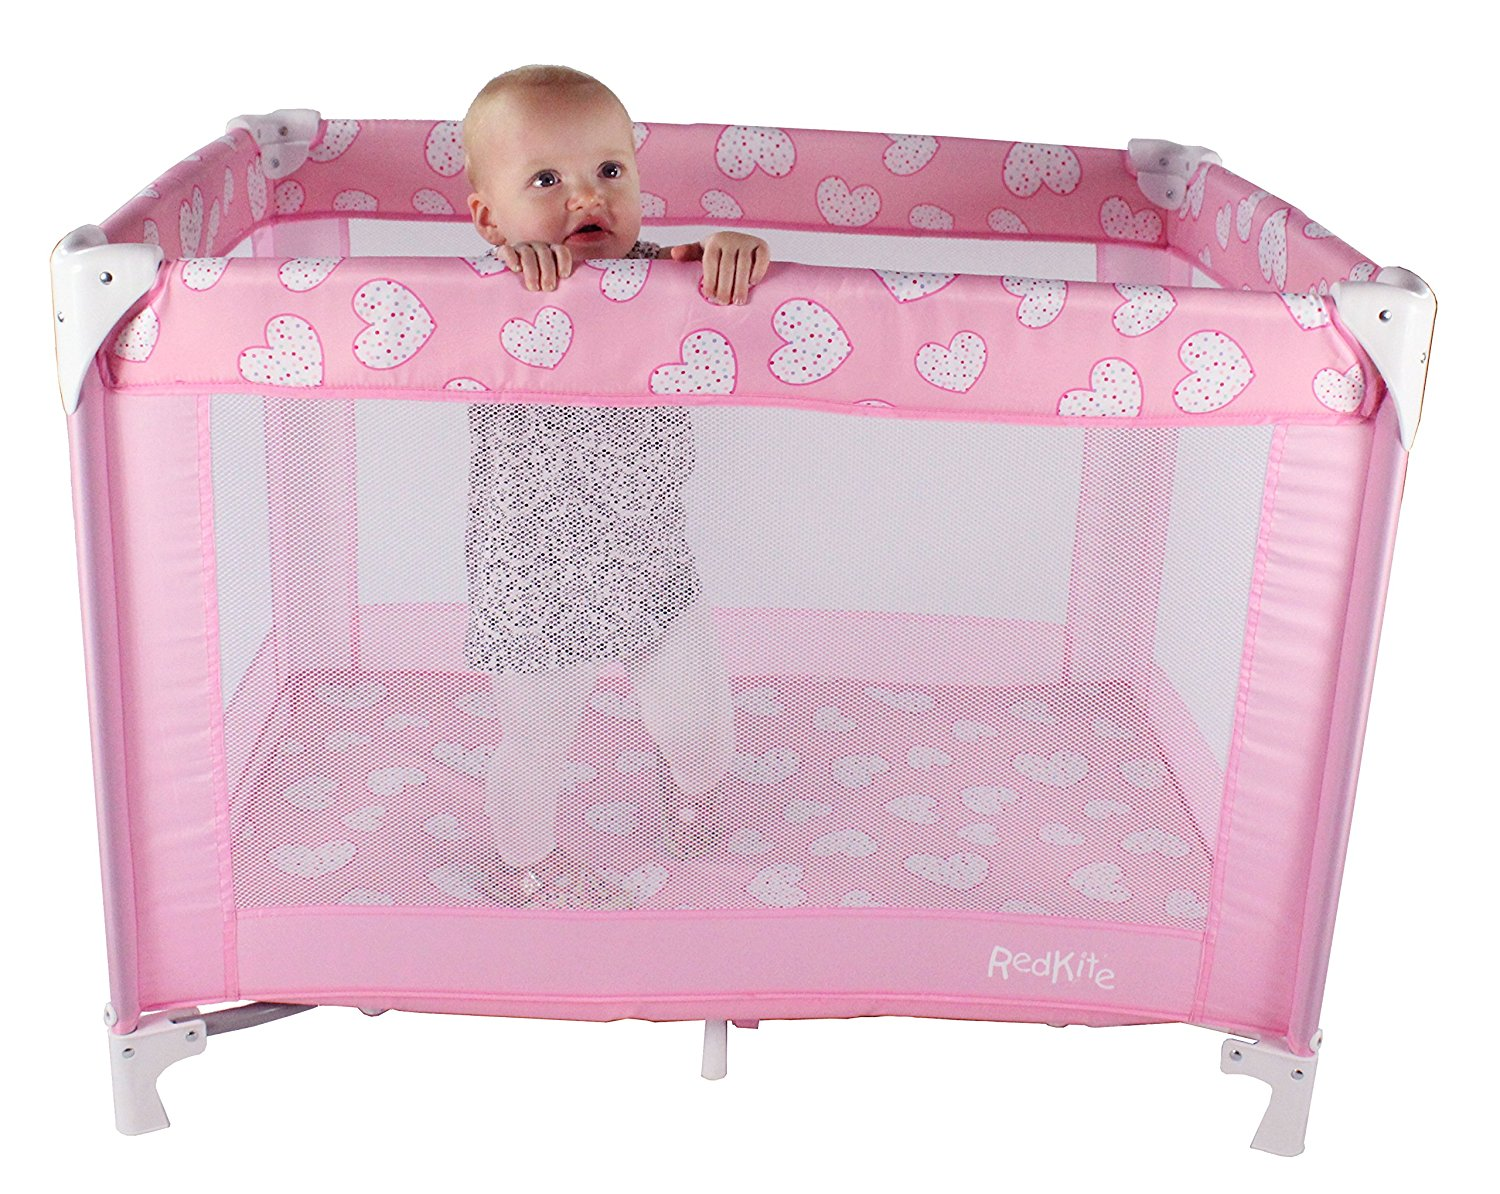 new red kite baby sleeptight folding travel cot pretty. Black Bedroom Furniture Sets. Home Design Ideas